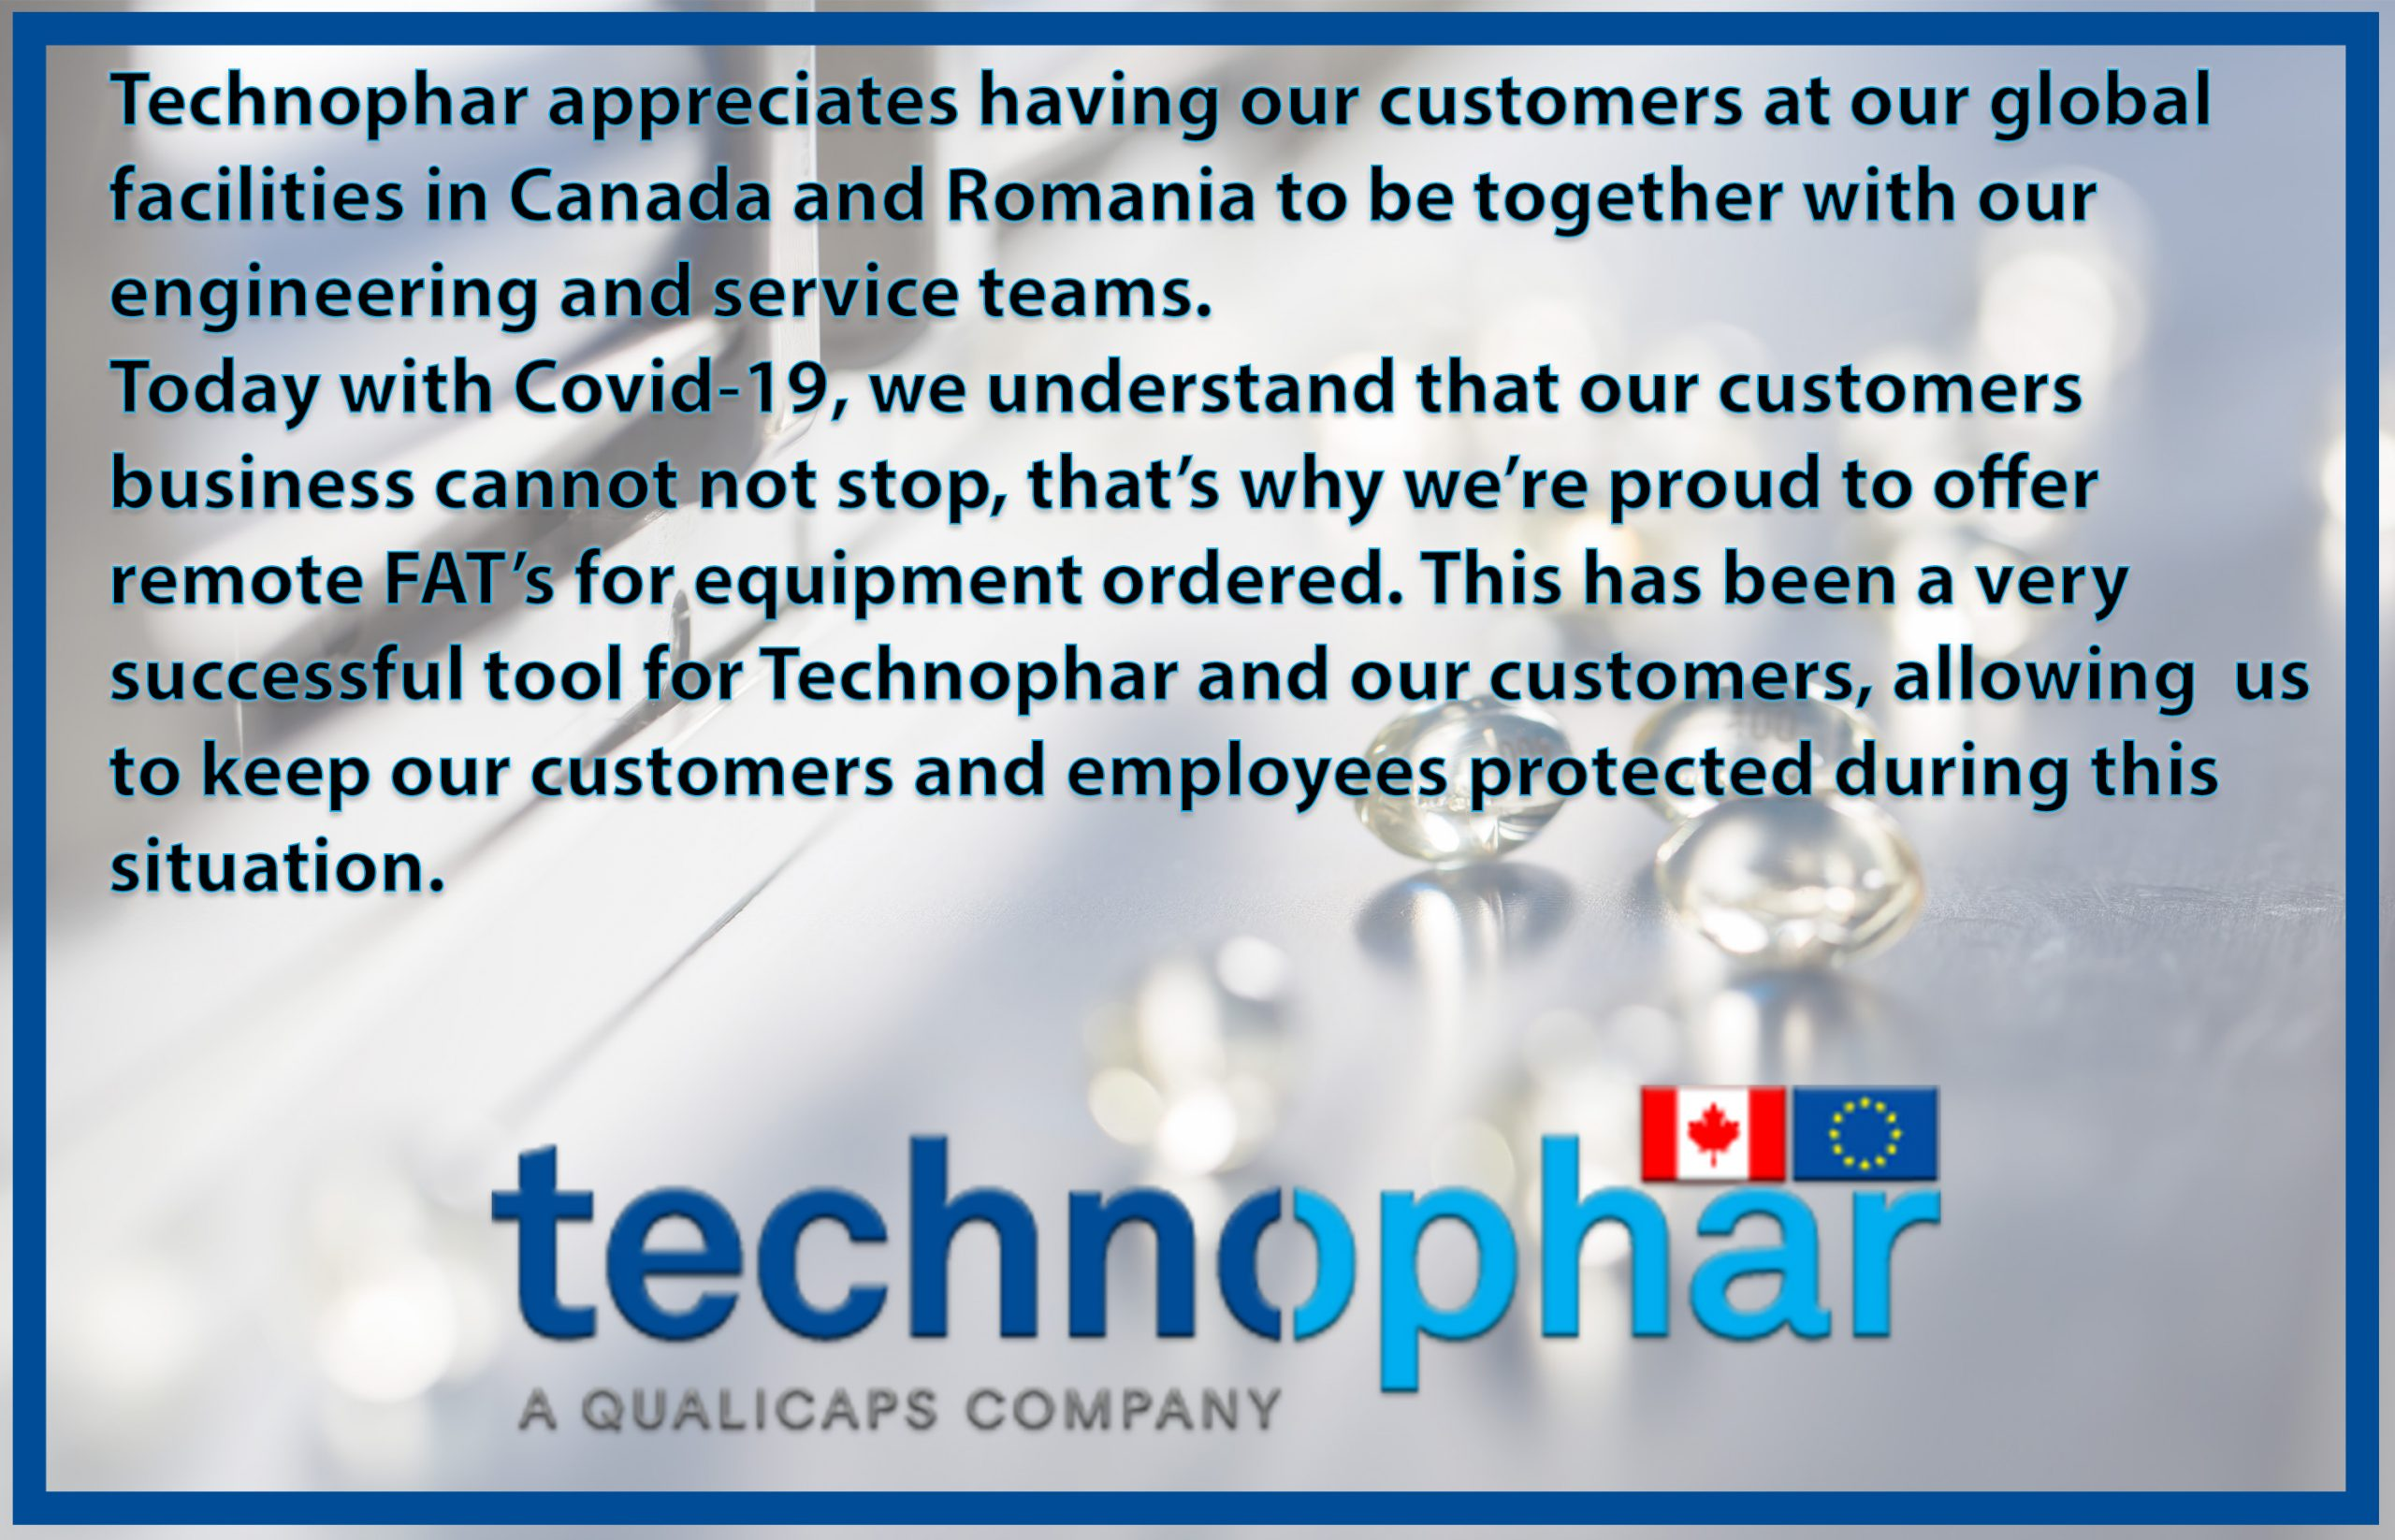 Technophar appreciates having our customers at our global facilities in Canada and Romania to be together with our engineering and service teams. Today with Covid-19, we understand that our customers business cannot not stop, that's why we're proud to offer remote FAT's for equipment ordered. This has been a very successful tool for Technophar and our customers, allowing us to keep our customers and employees protected during this situation.